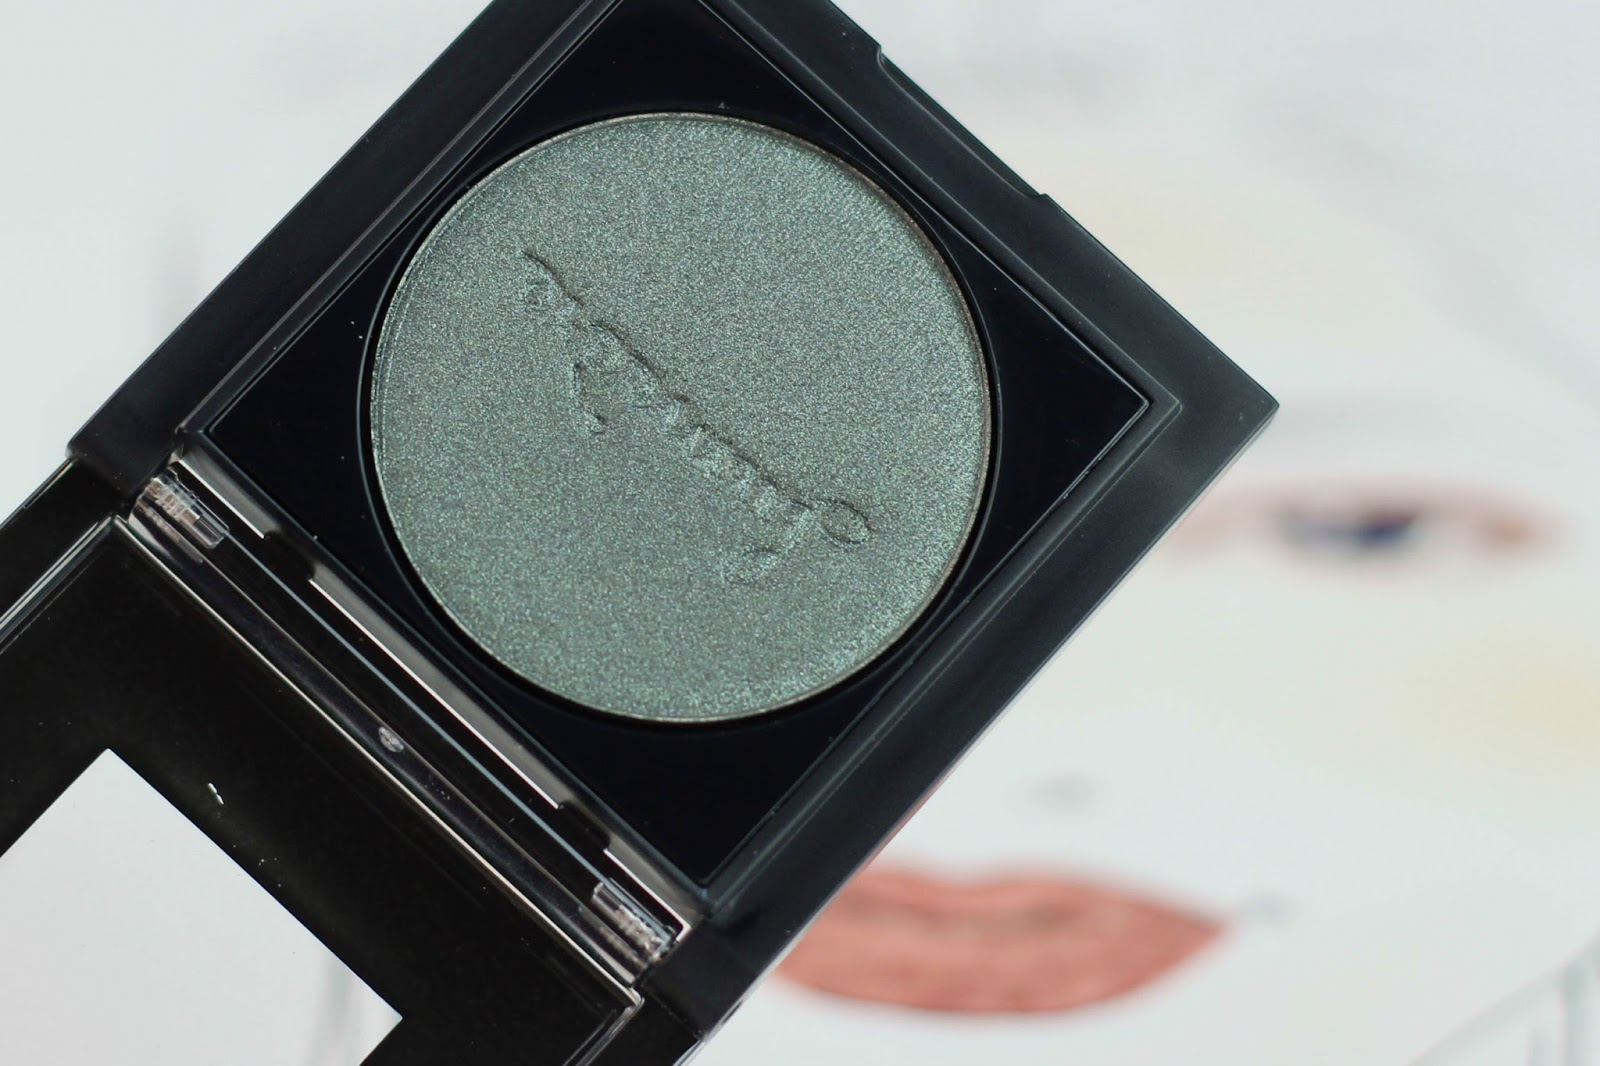 catrice, Prêt-à-Lumière Longlasting Eyeshadow, lidschatten, review, swatches, neues sortiment, 2016, herbst, farbtrends, drogerie, schimmer, longlasting eyeshadow, Prêt-à-Lumière, nude, cosmetics, look,